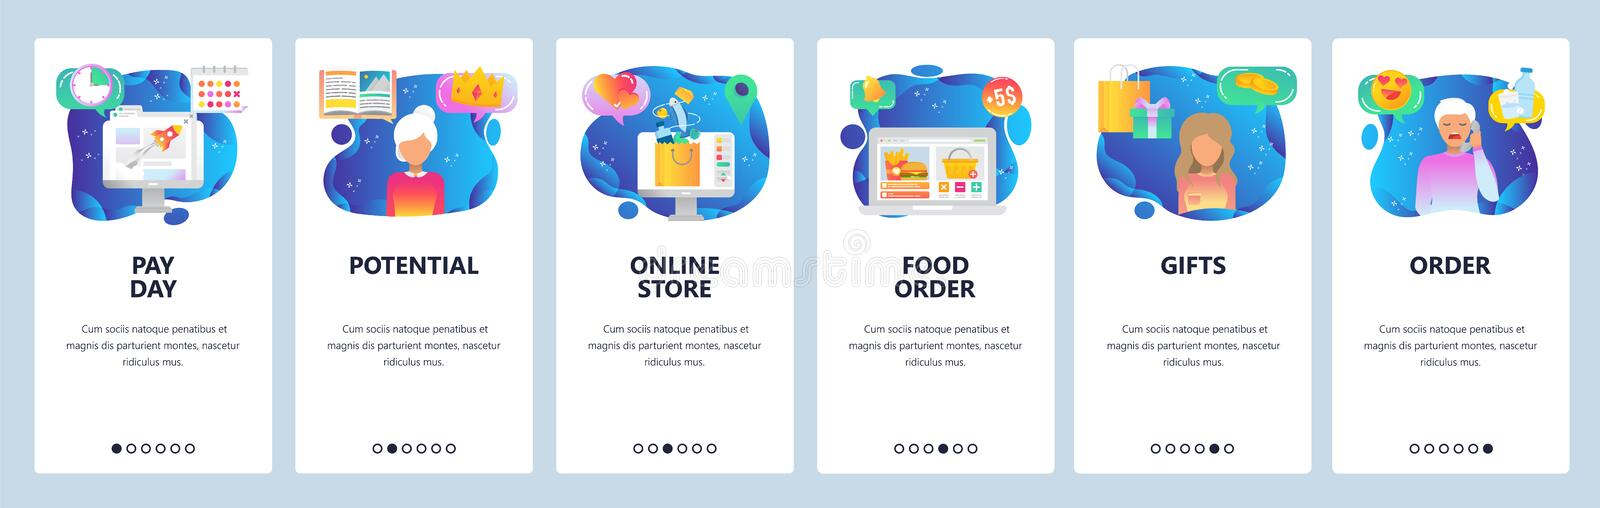 Mobile app onboarding screens. Online shoping and order by phone call, foor delivery, pay day. Menu vector banner royalty free illustration